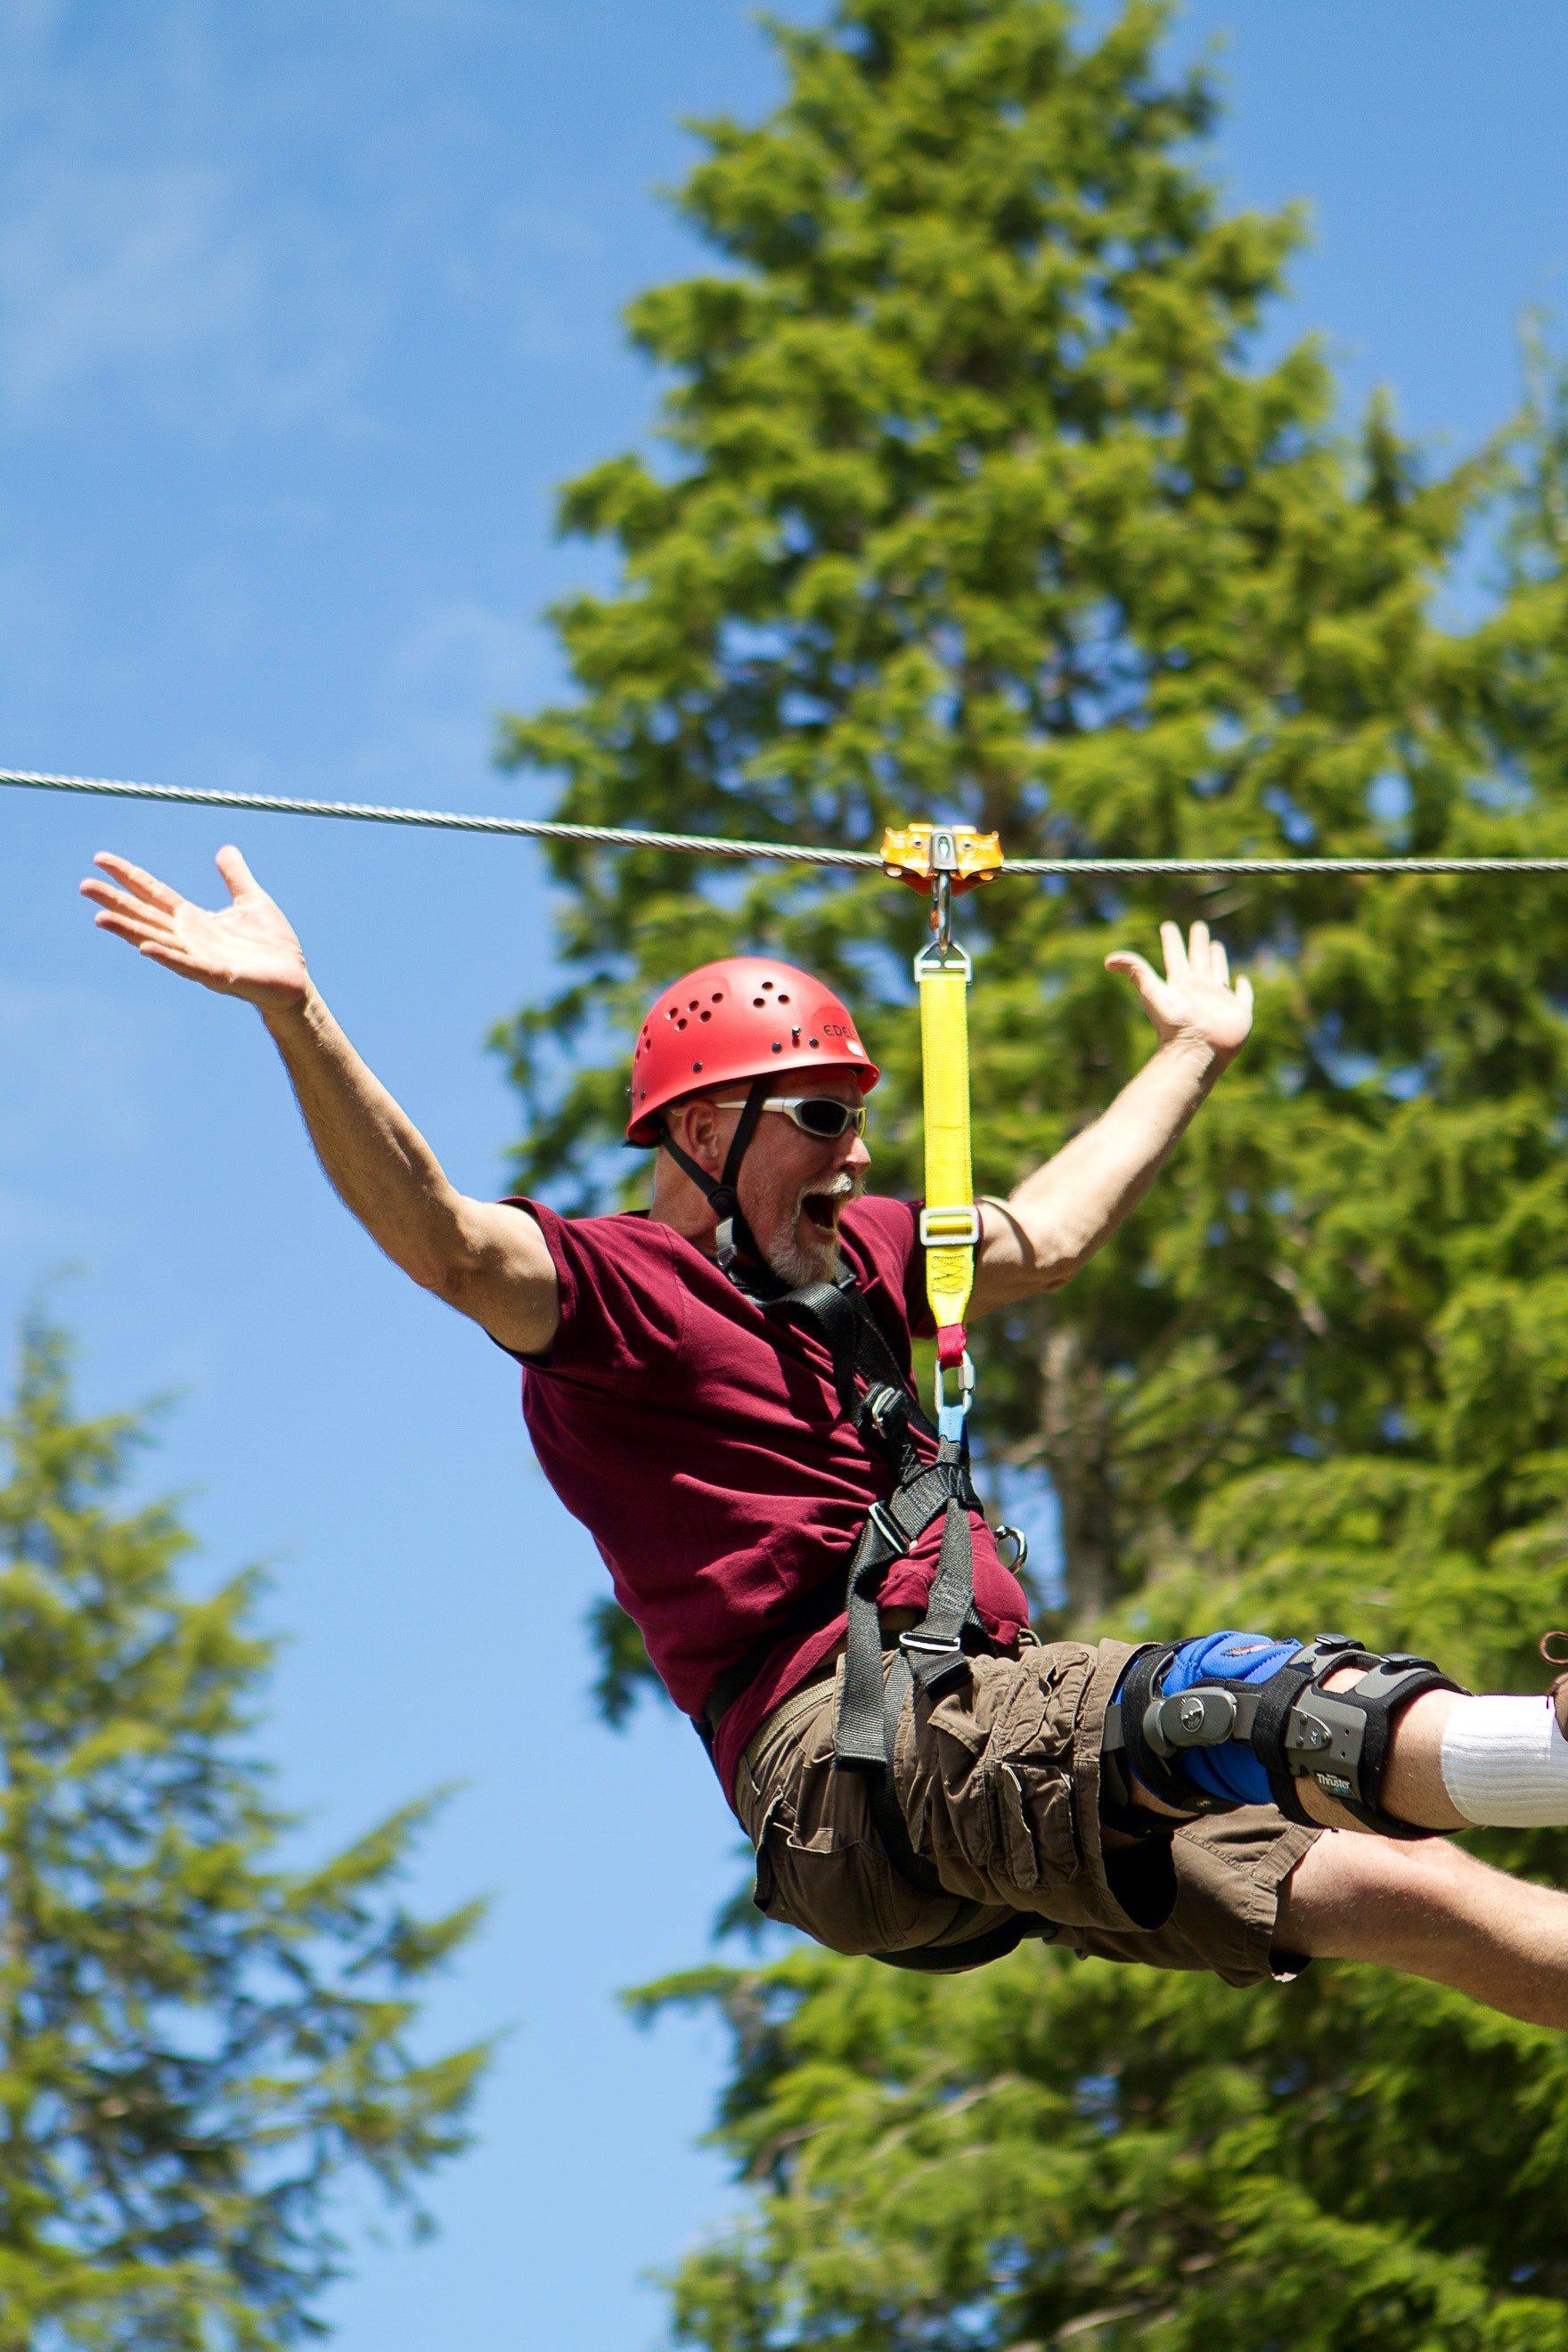 A man cheering as he rides the zipline